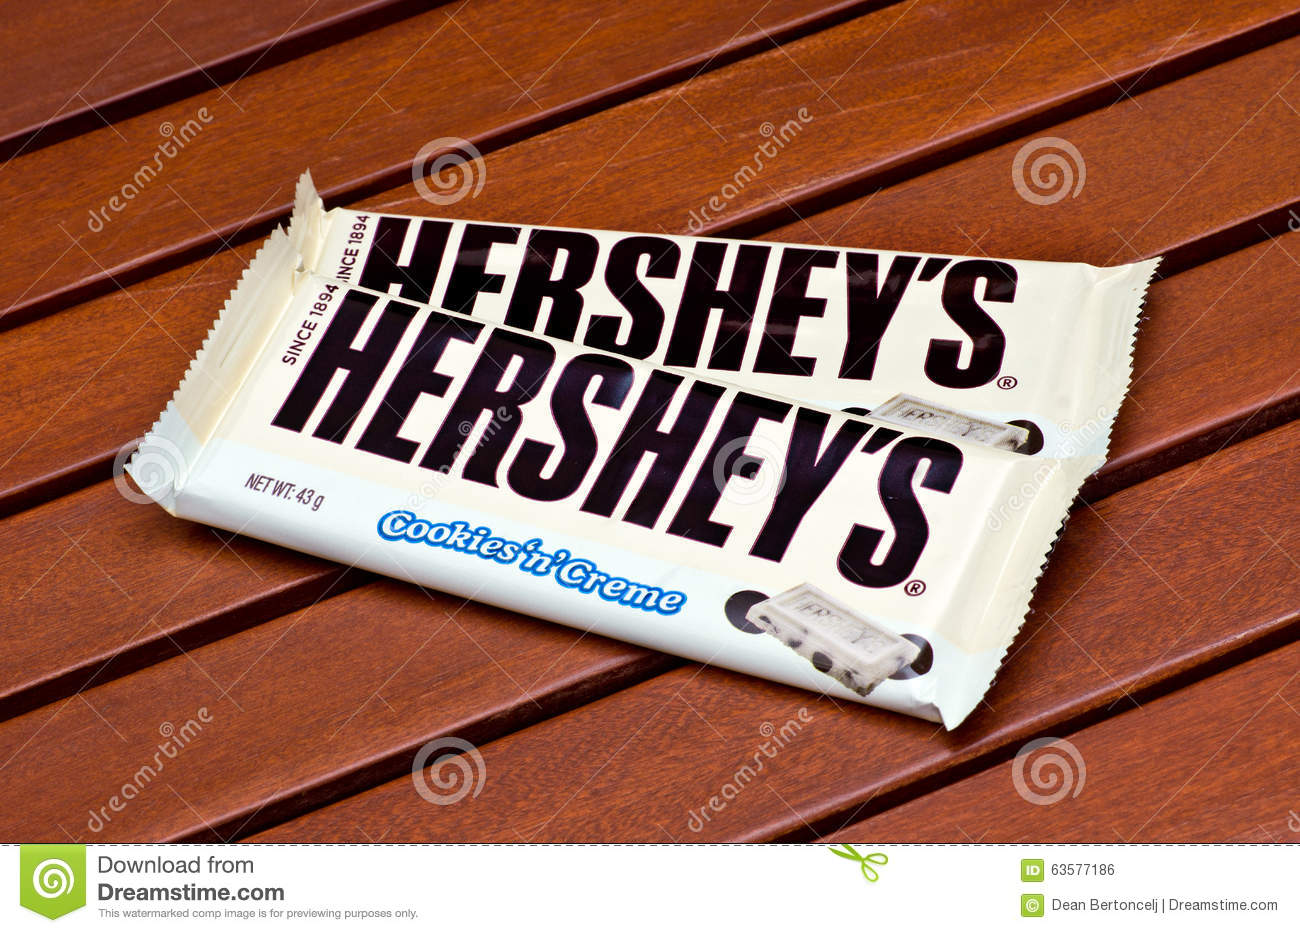 Hershey Chocolate Stock Photos, Images, & Pictures - 272 Images